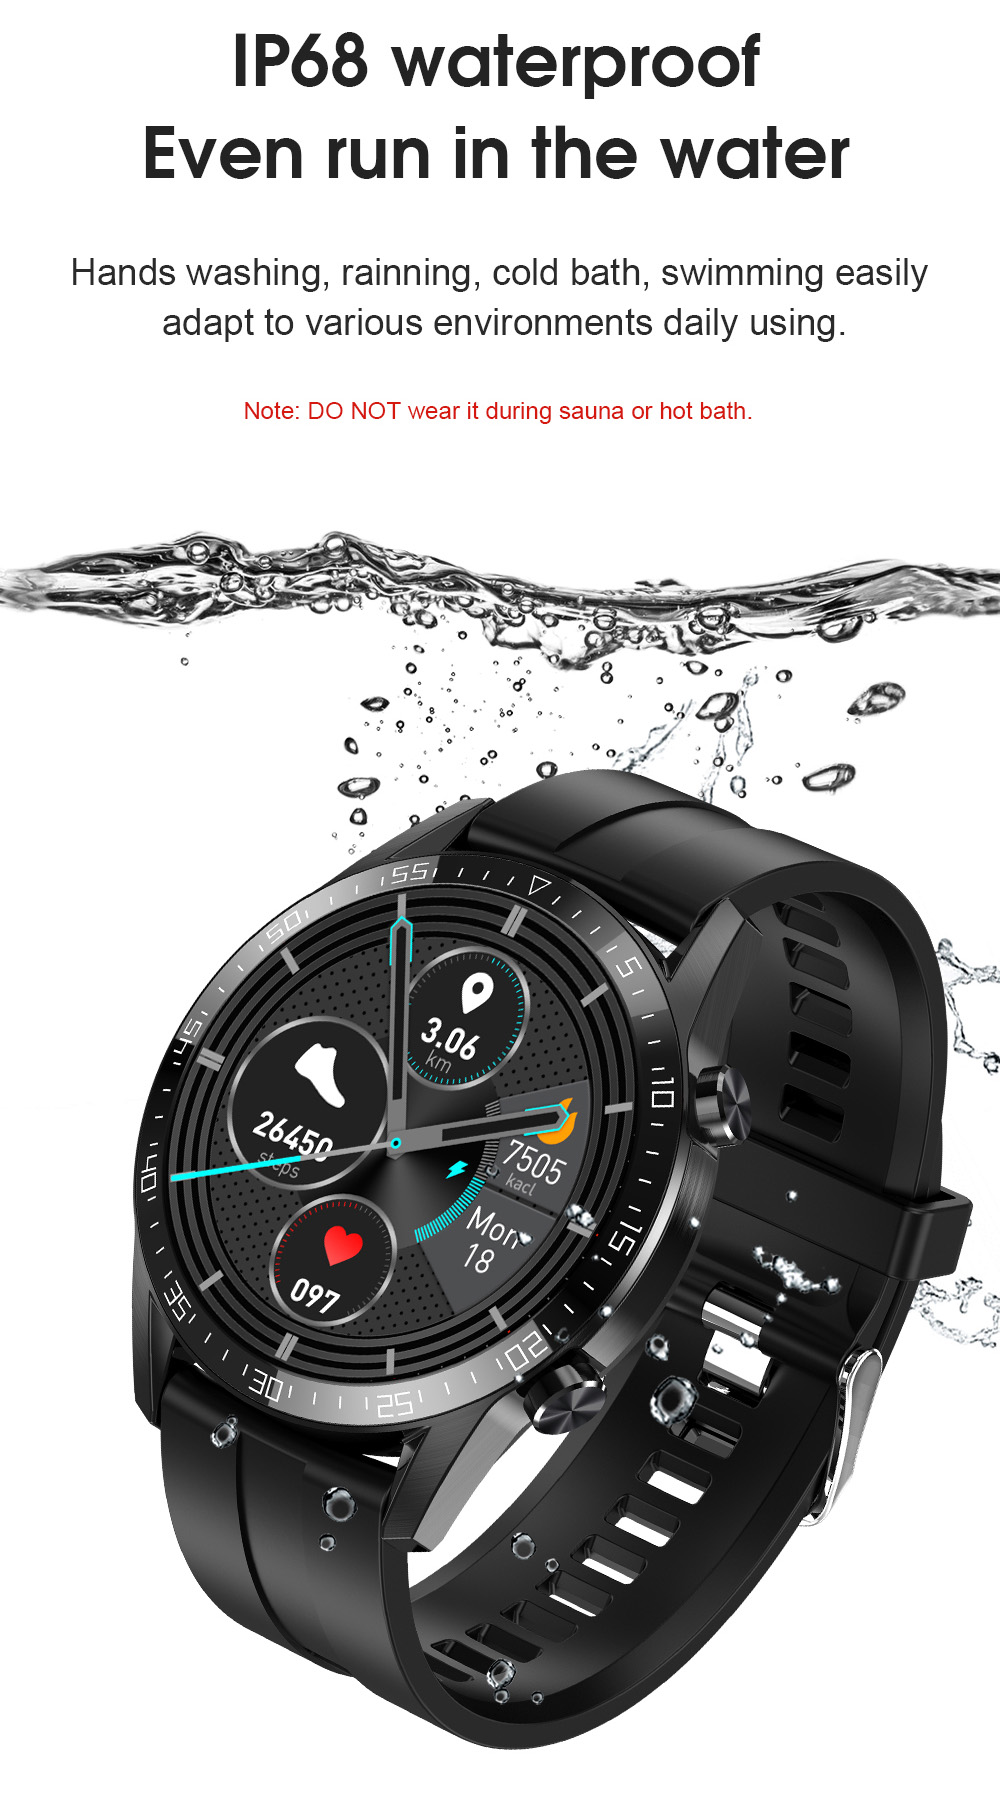 Hcc49d75faca94e83ae5e5c3804709054d Timewolf IP68 Smart Watch Men Android 2020 Full Touch Smartwatch Men Women Smart Watch For Huawei Xiaomi Apple IOS Android Phone